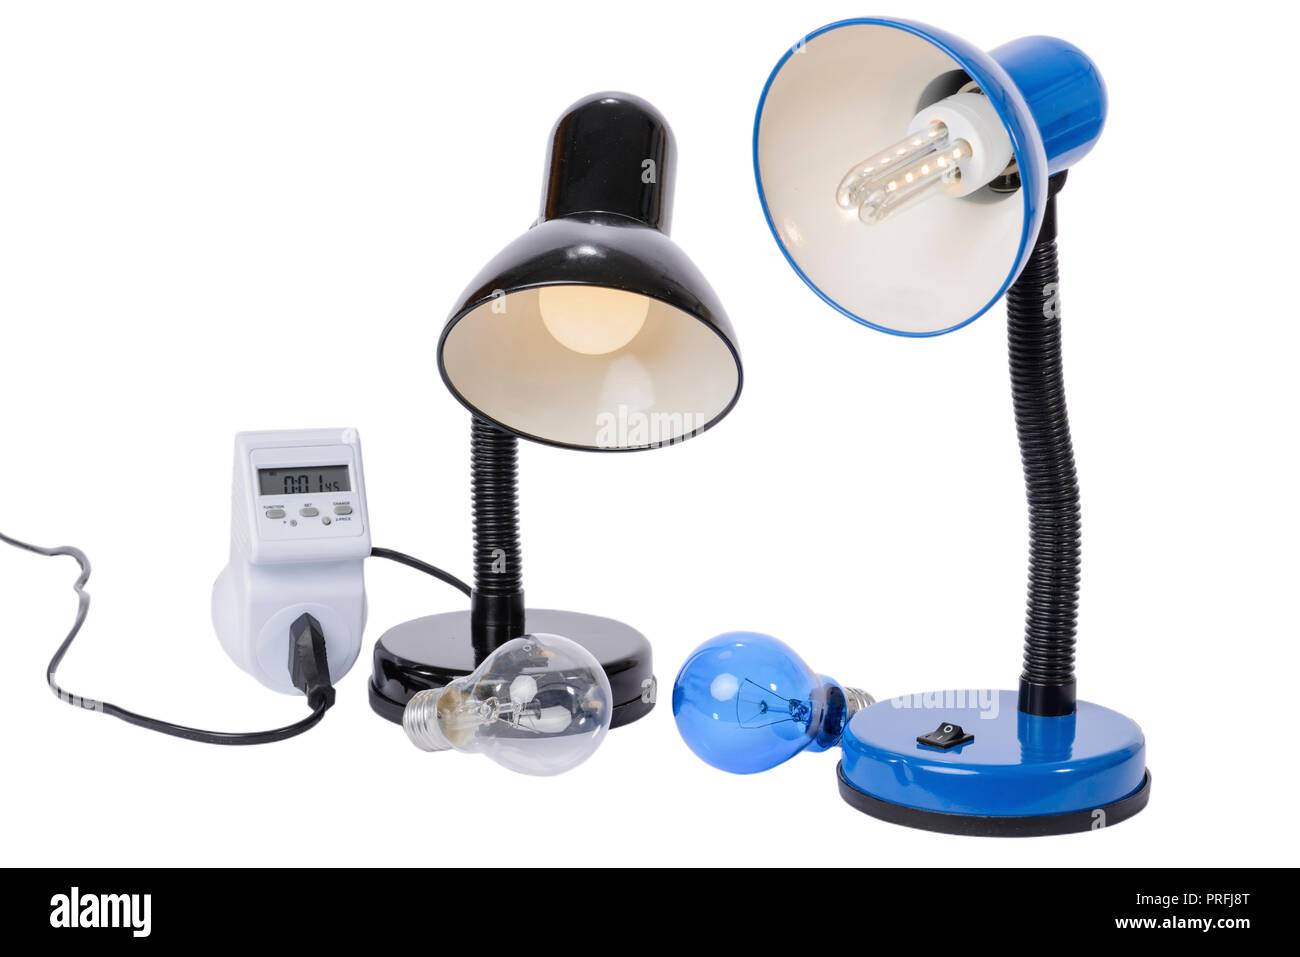 Led lamp illuminated with lampholder replaces the old obsolete light bulbs. An energy meter calculates the savings of electrical energy. - Stock Image